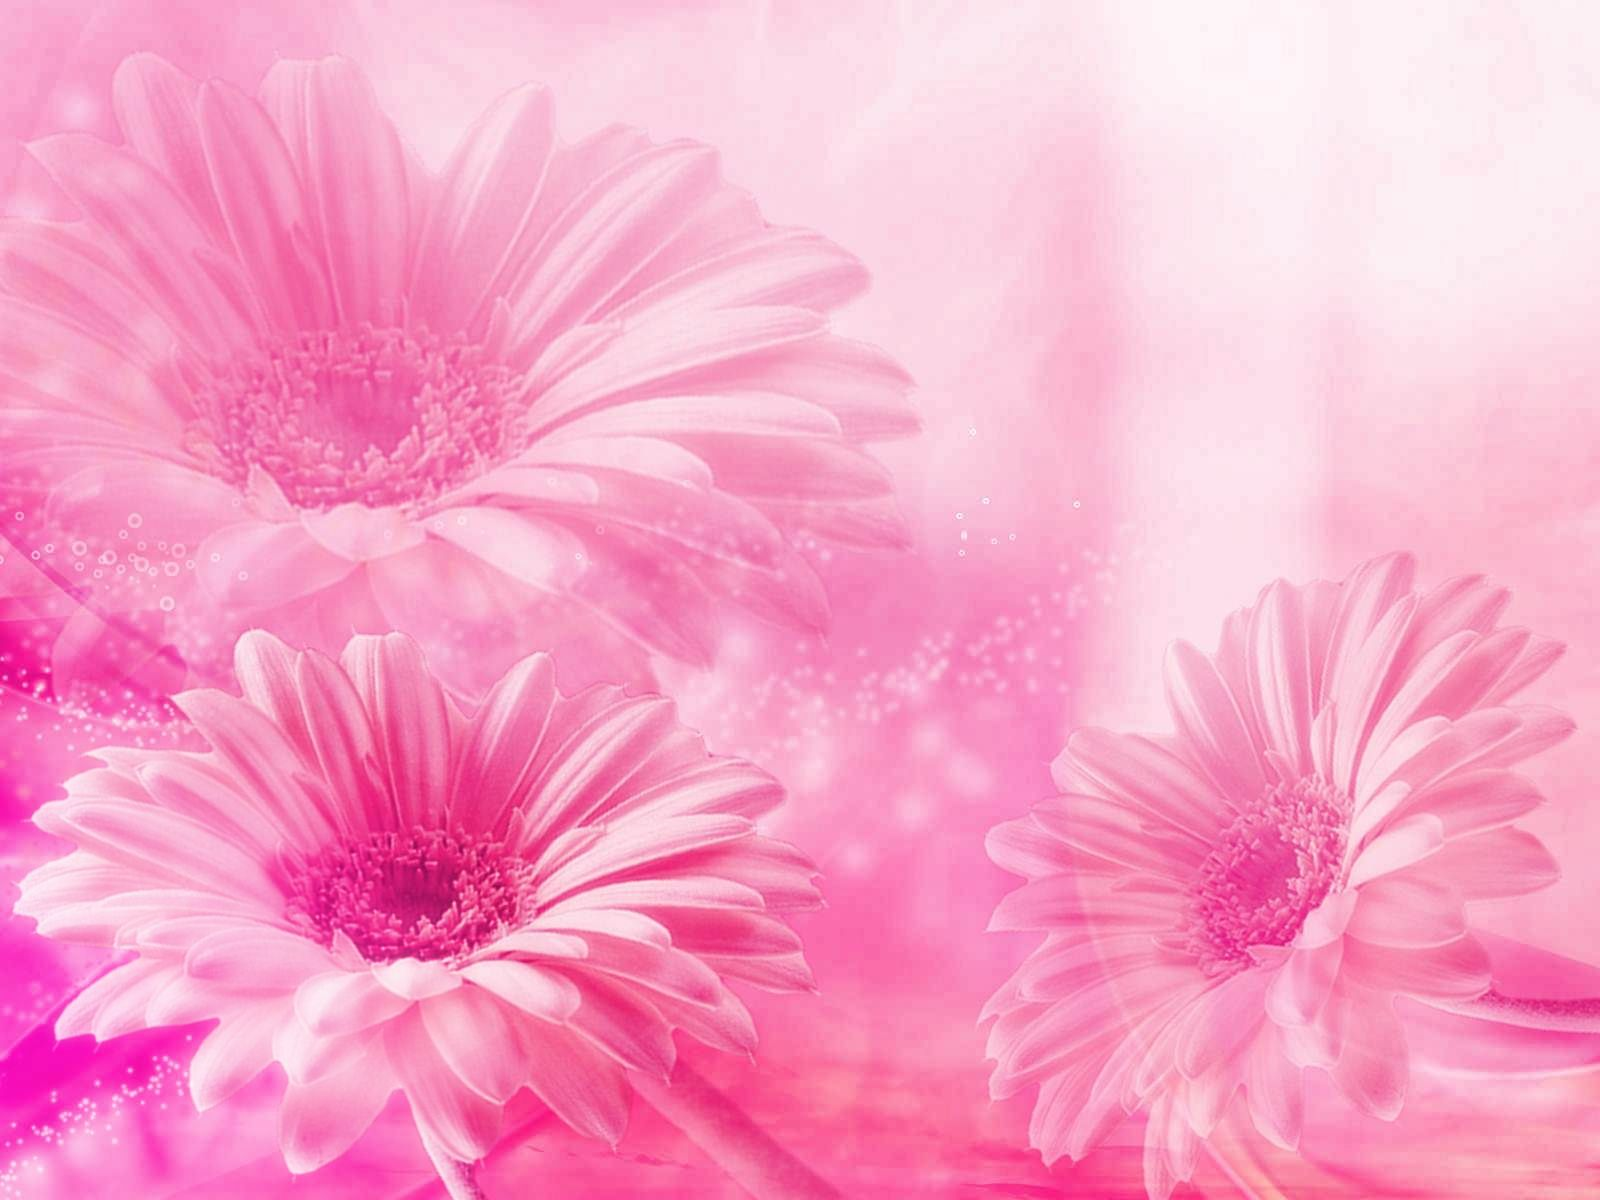 Fondo De Flores De Color Rosa Pastel: Wallpapers Flowers,fondos Flores Colores Pasteles